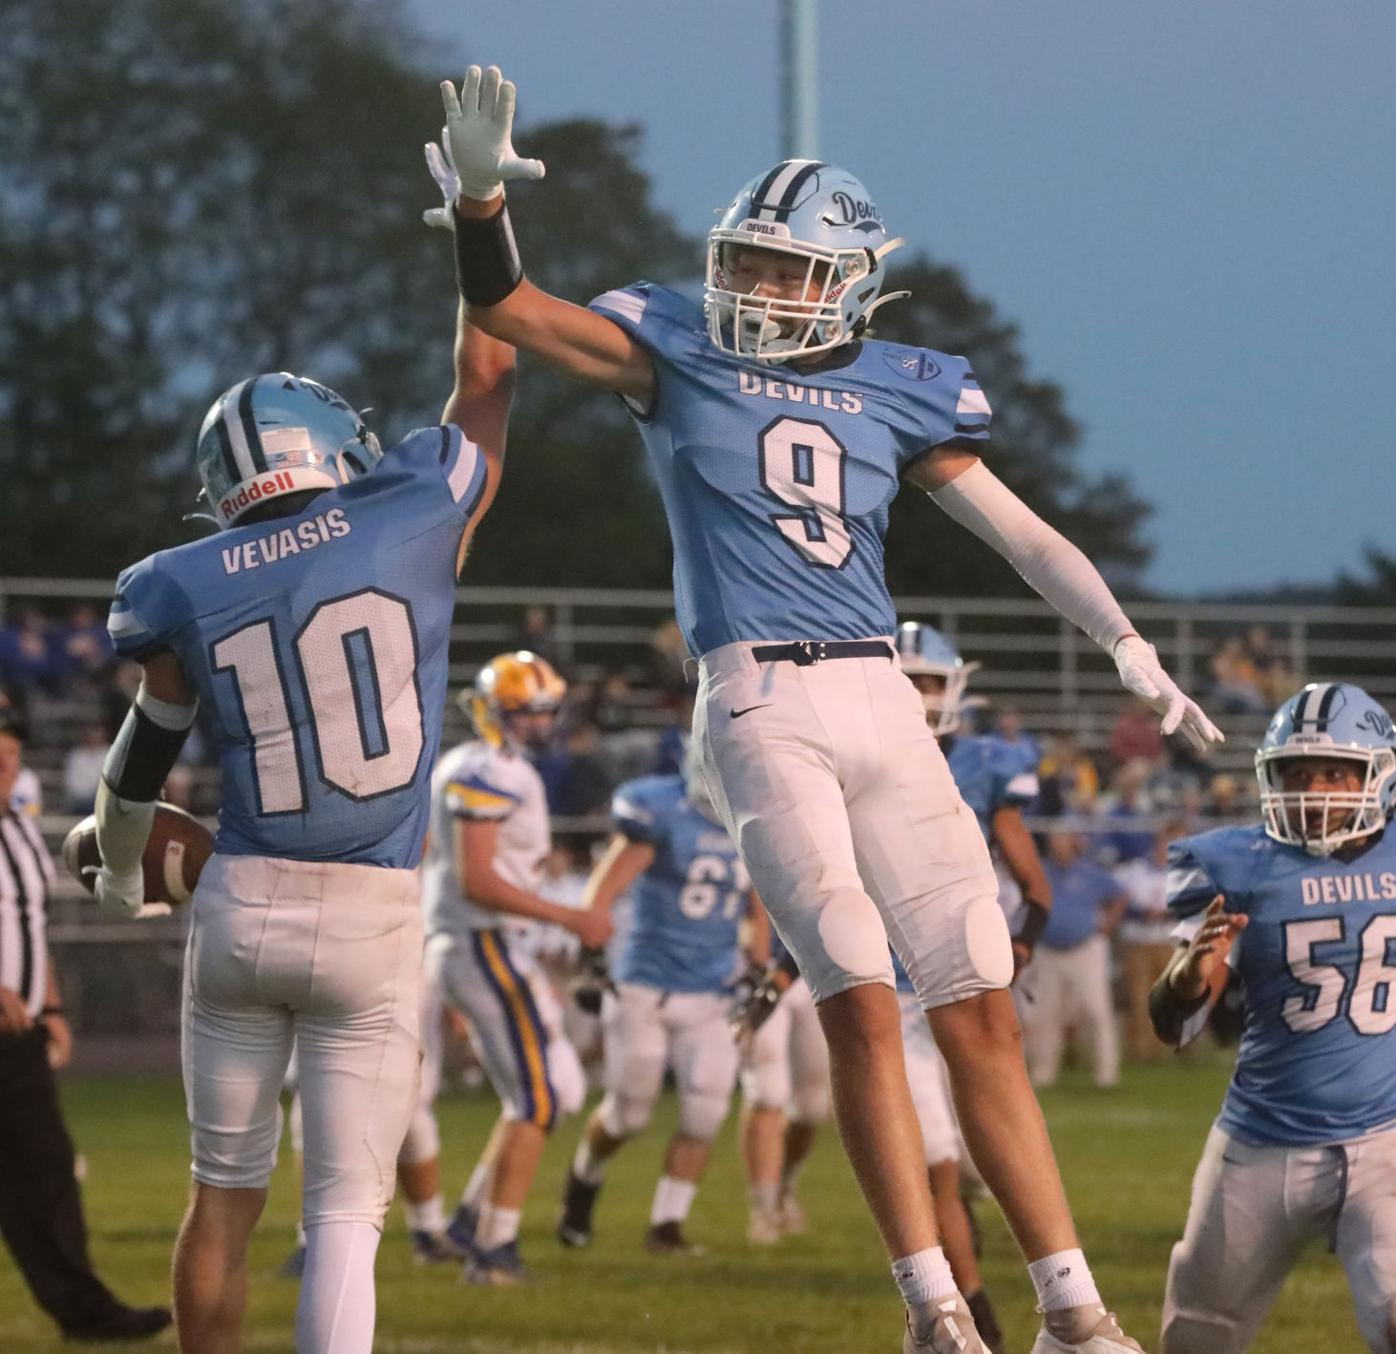 GAMEFACE FEATURE: Blue Devils rewarded for their resilience